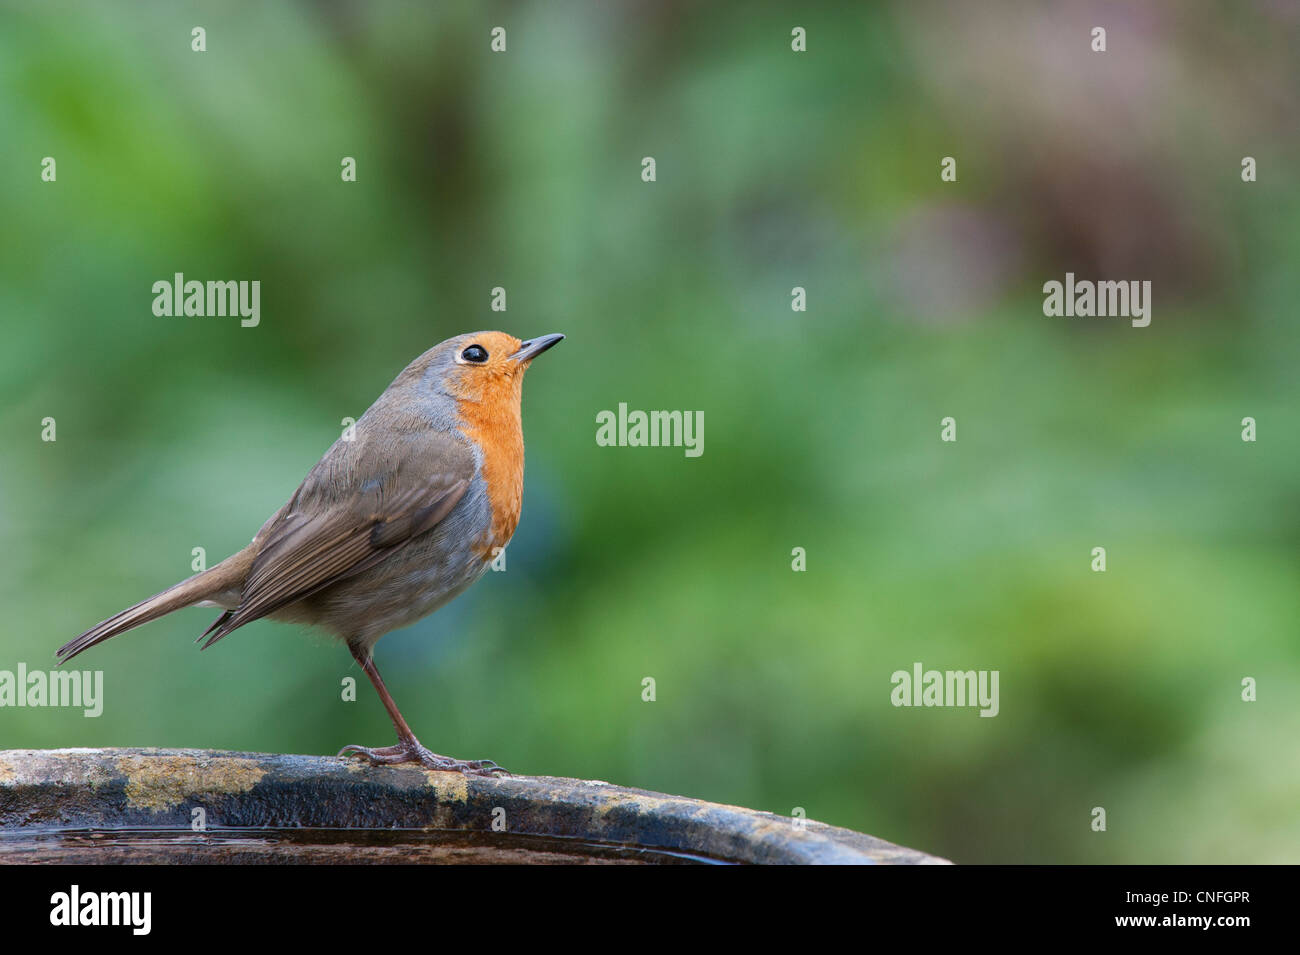 Robin looking up perched on a bird bath in the garden - Stock Image